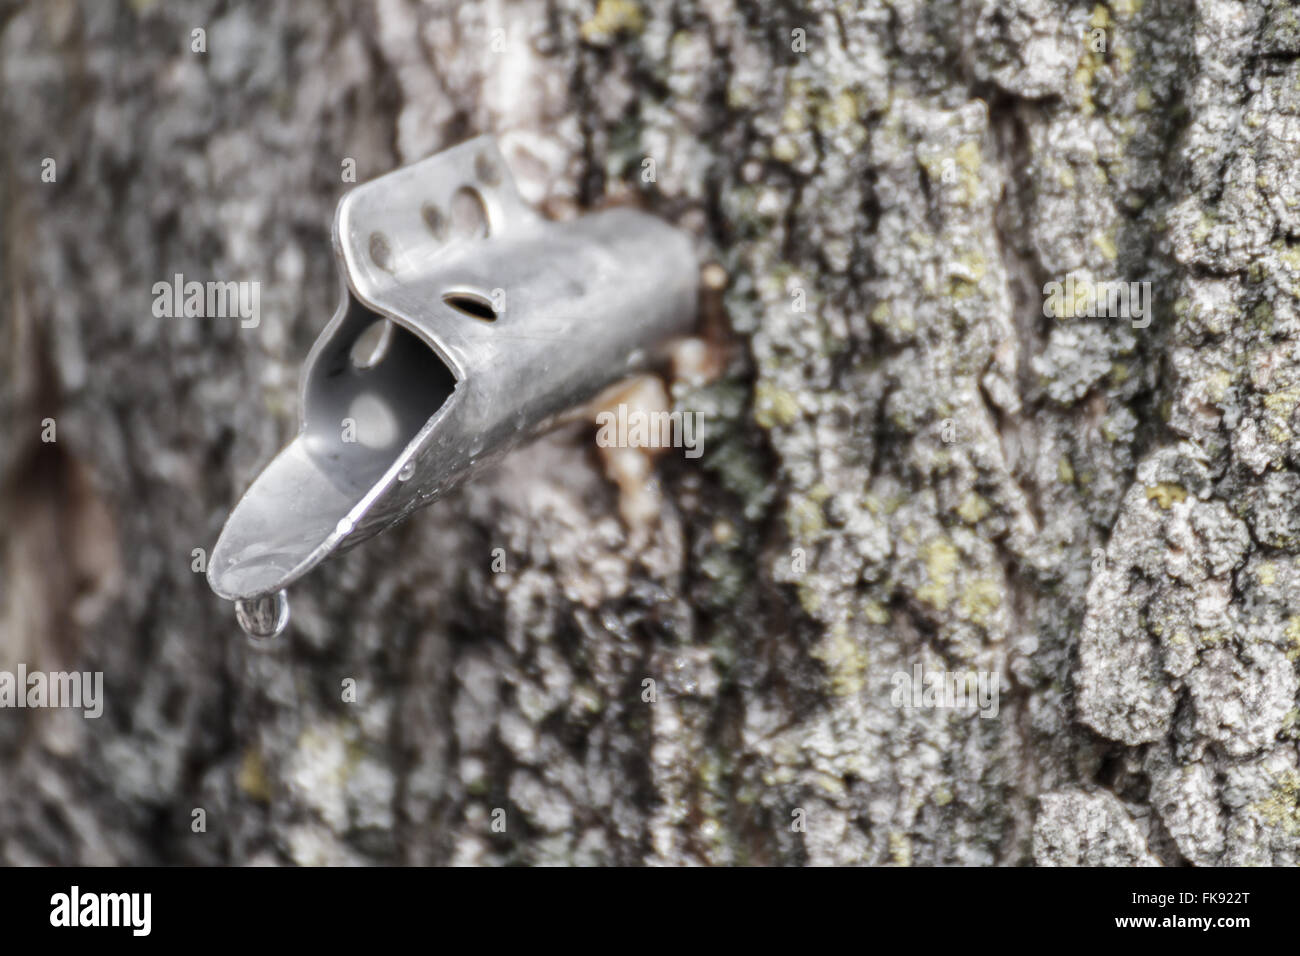 Sap dripping from a spile in a maple tree - Stock Image